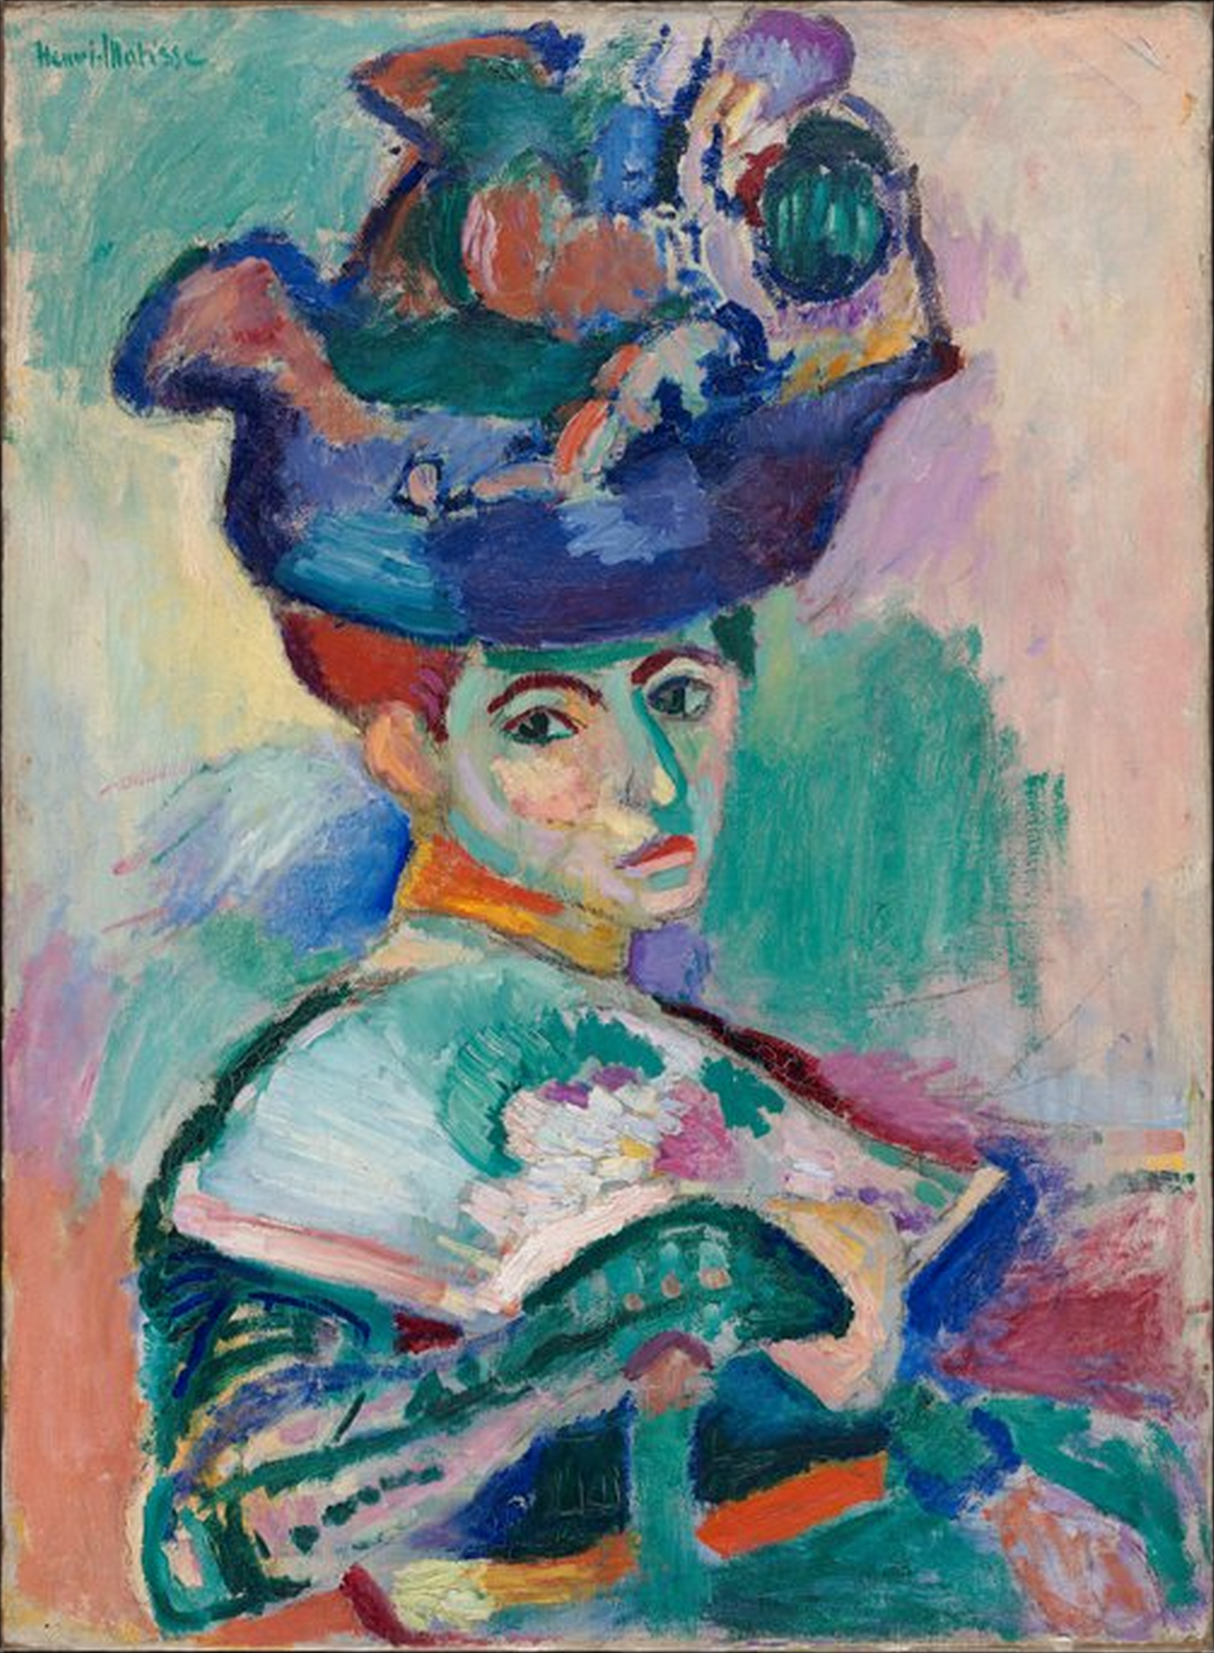 Matisse, Woman with a Hat, 1905